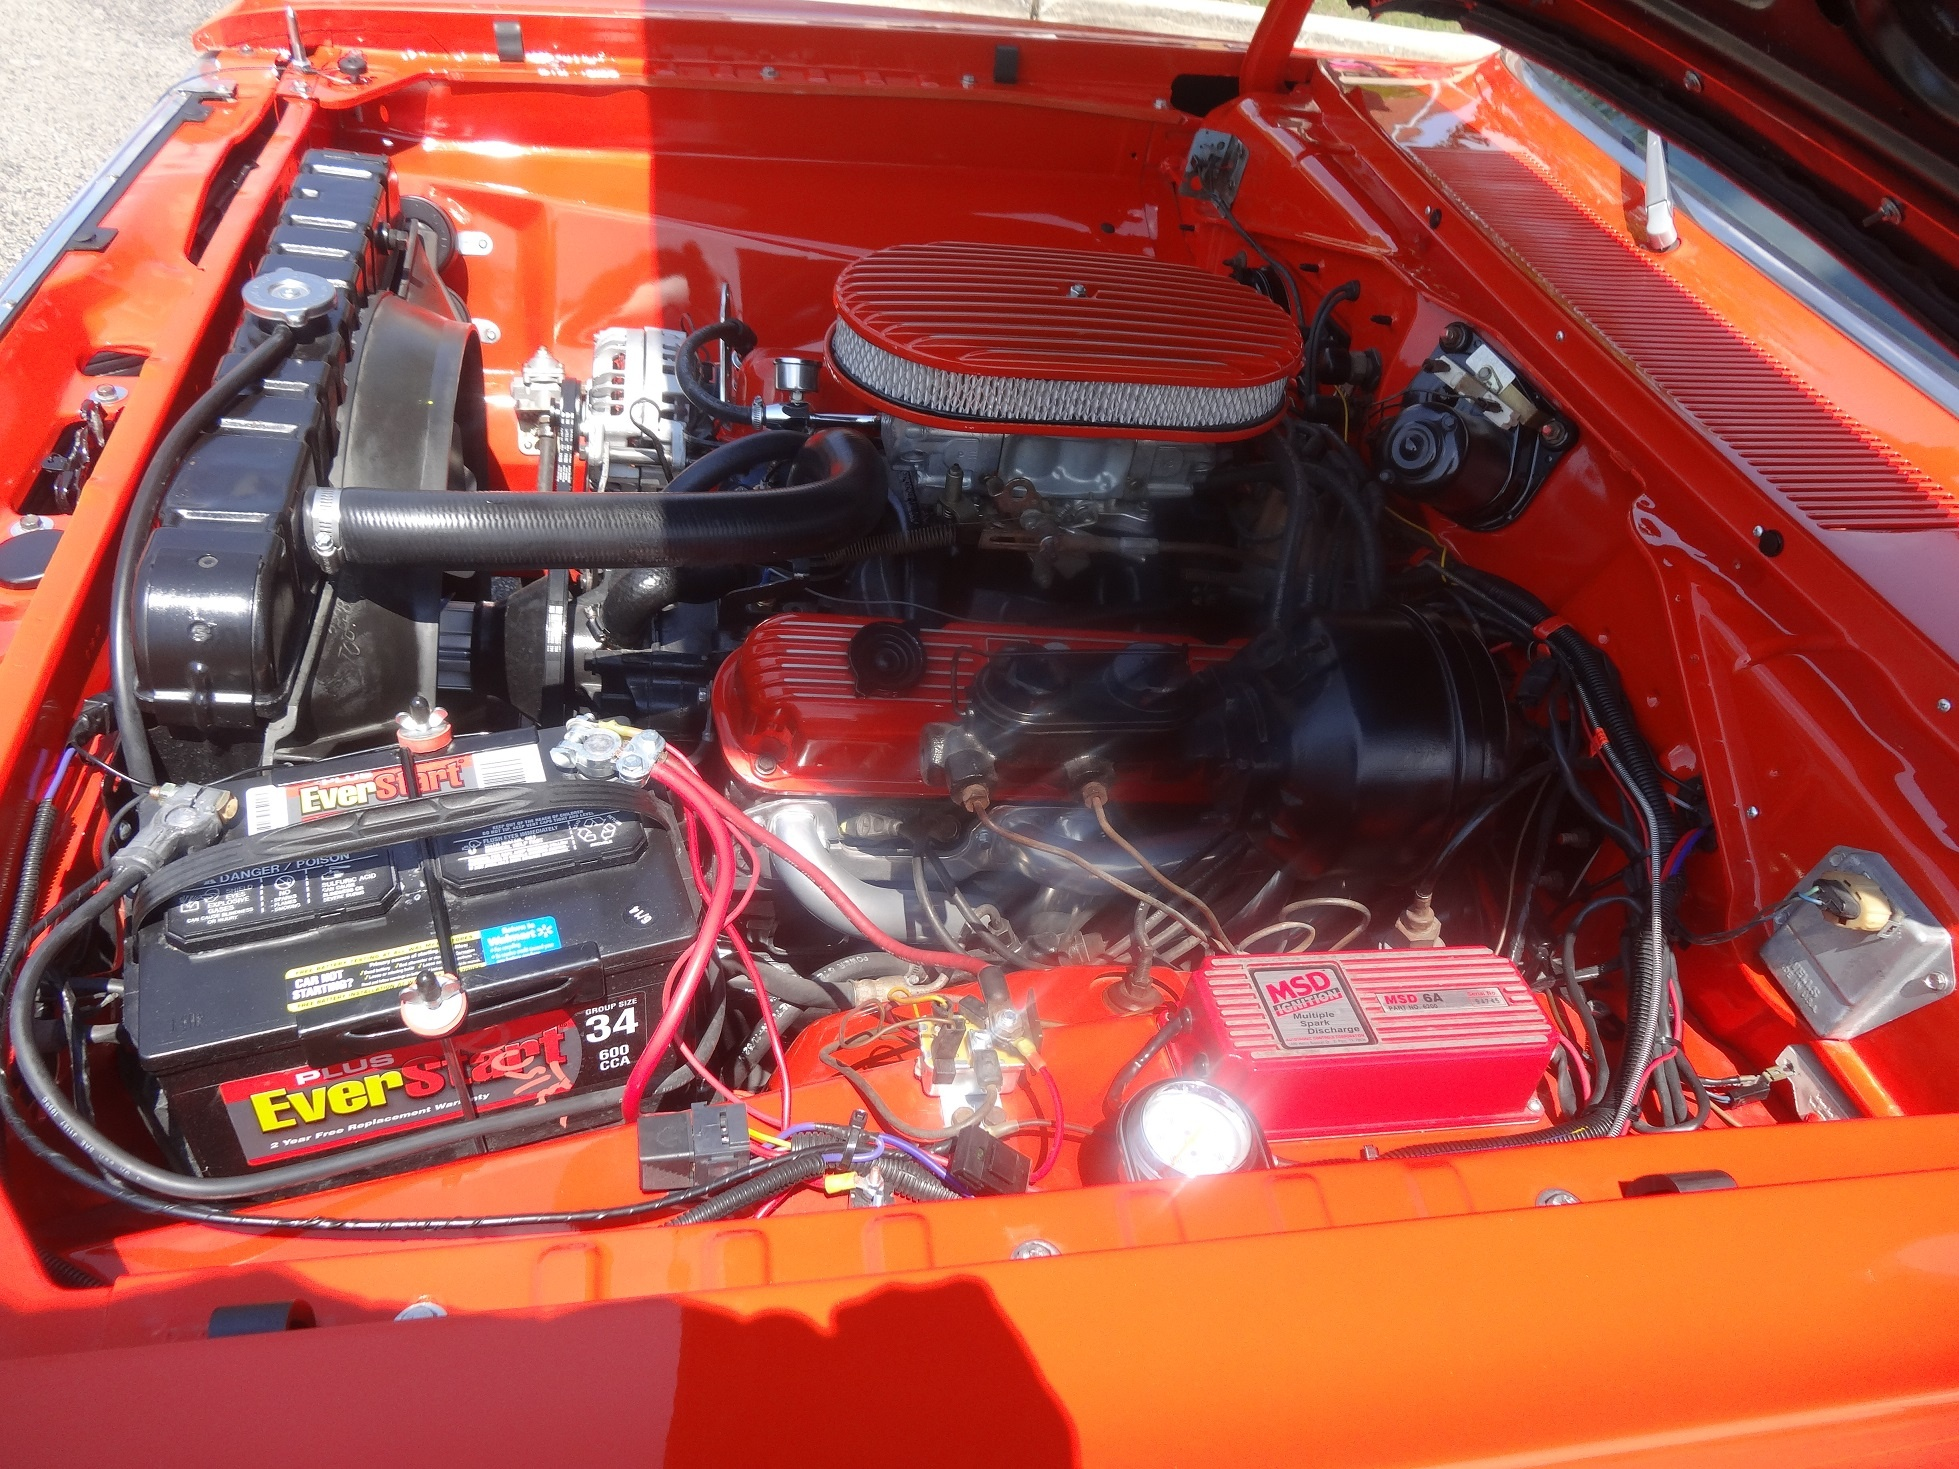 1965 Chevelle Wiring Diagram also 7w79a 2wd Pick Up Slant Six Automatic Transmission Own 1985 in addition 375980268868492956 additionally 7w79a 2wd Pick Up Slant Six Automatic Transmission Own 1985 in addition Mopar Wiring Diagram. on mymopar wiring